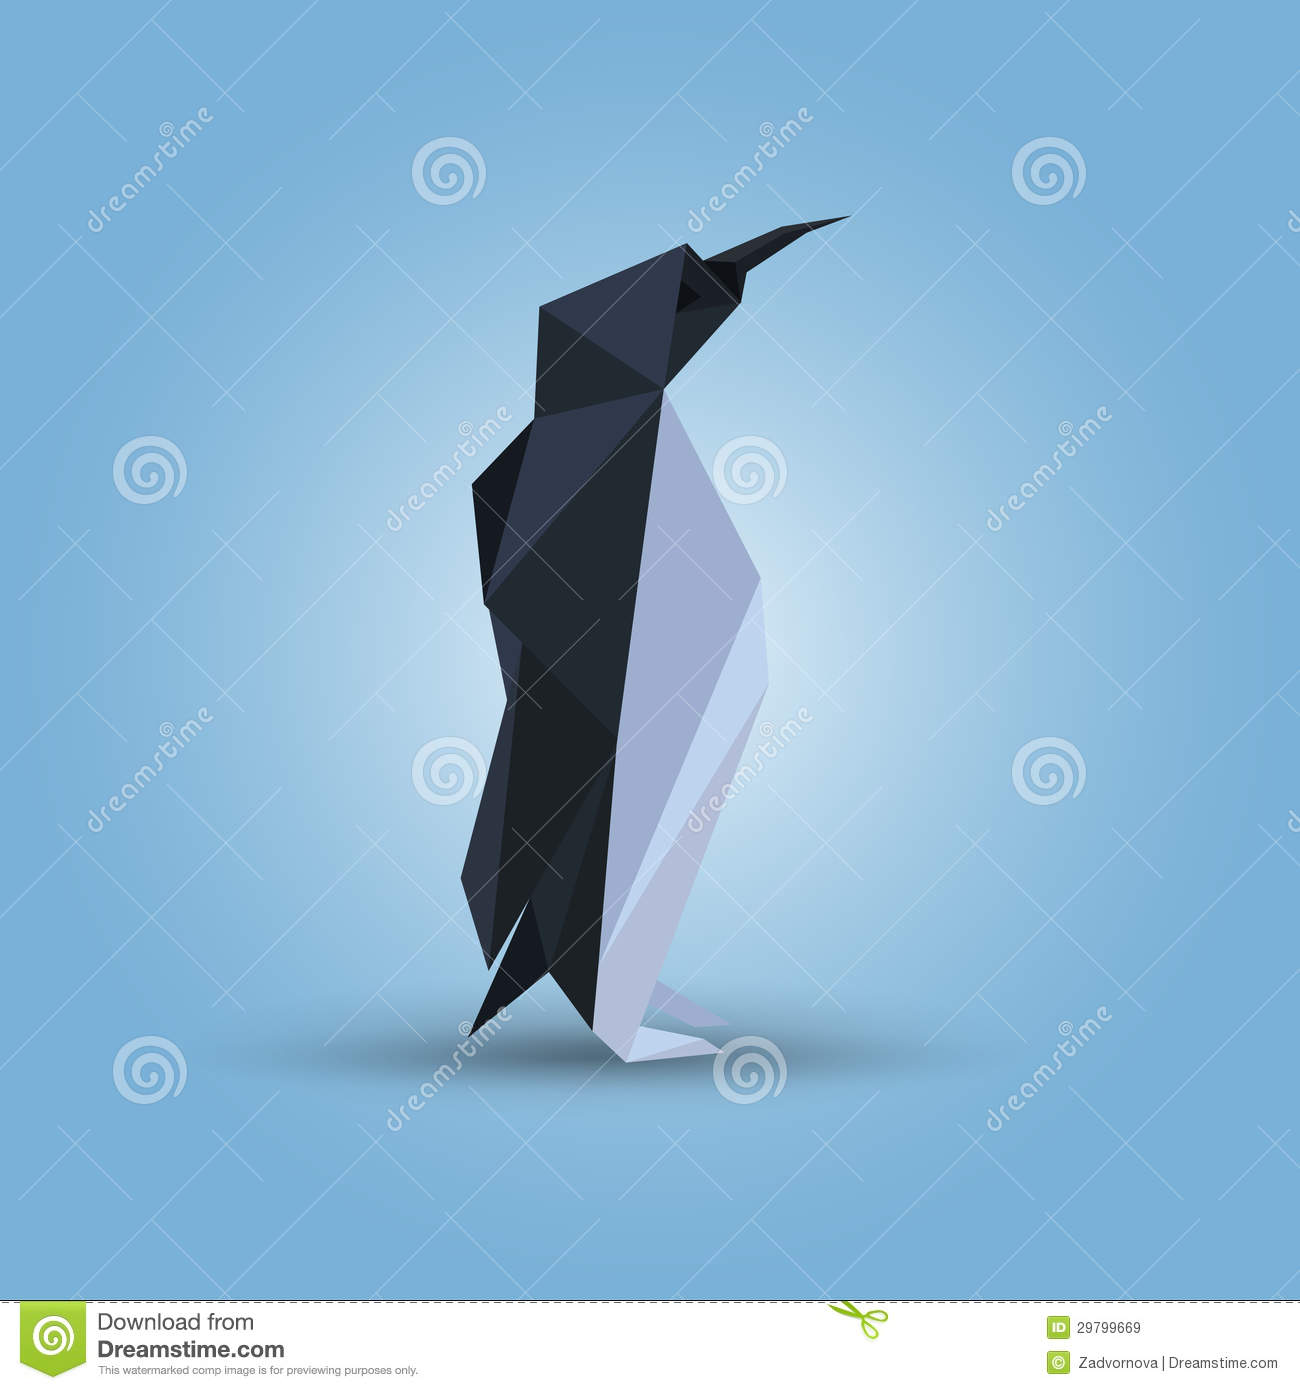 Illustration Of Origami Penguin Royalty Free Stock Images ... - photo#47